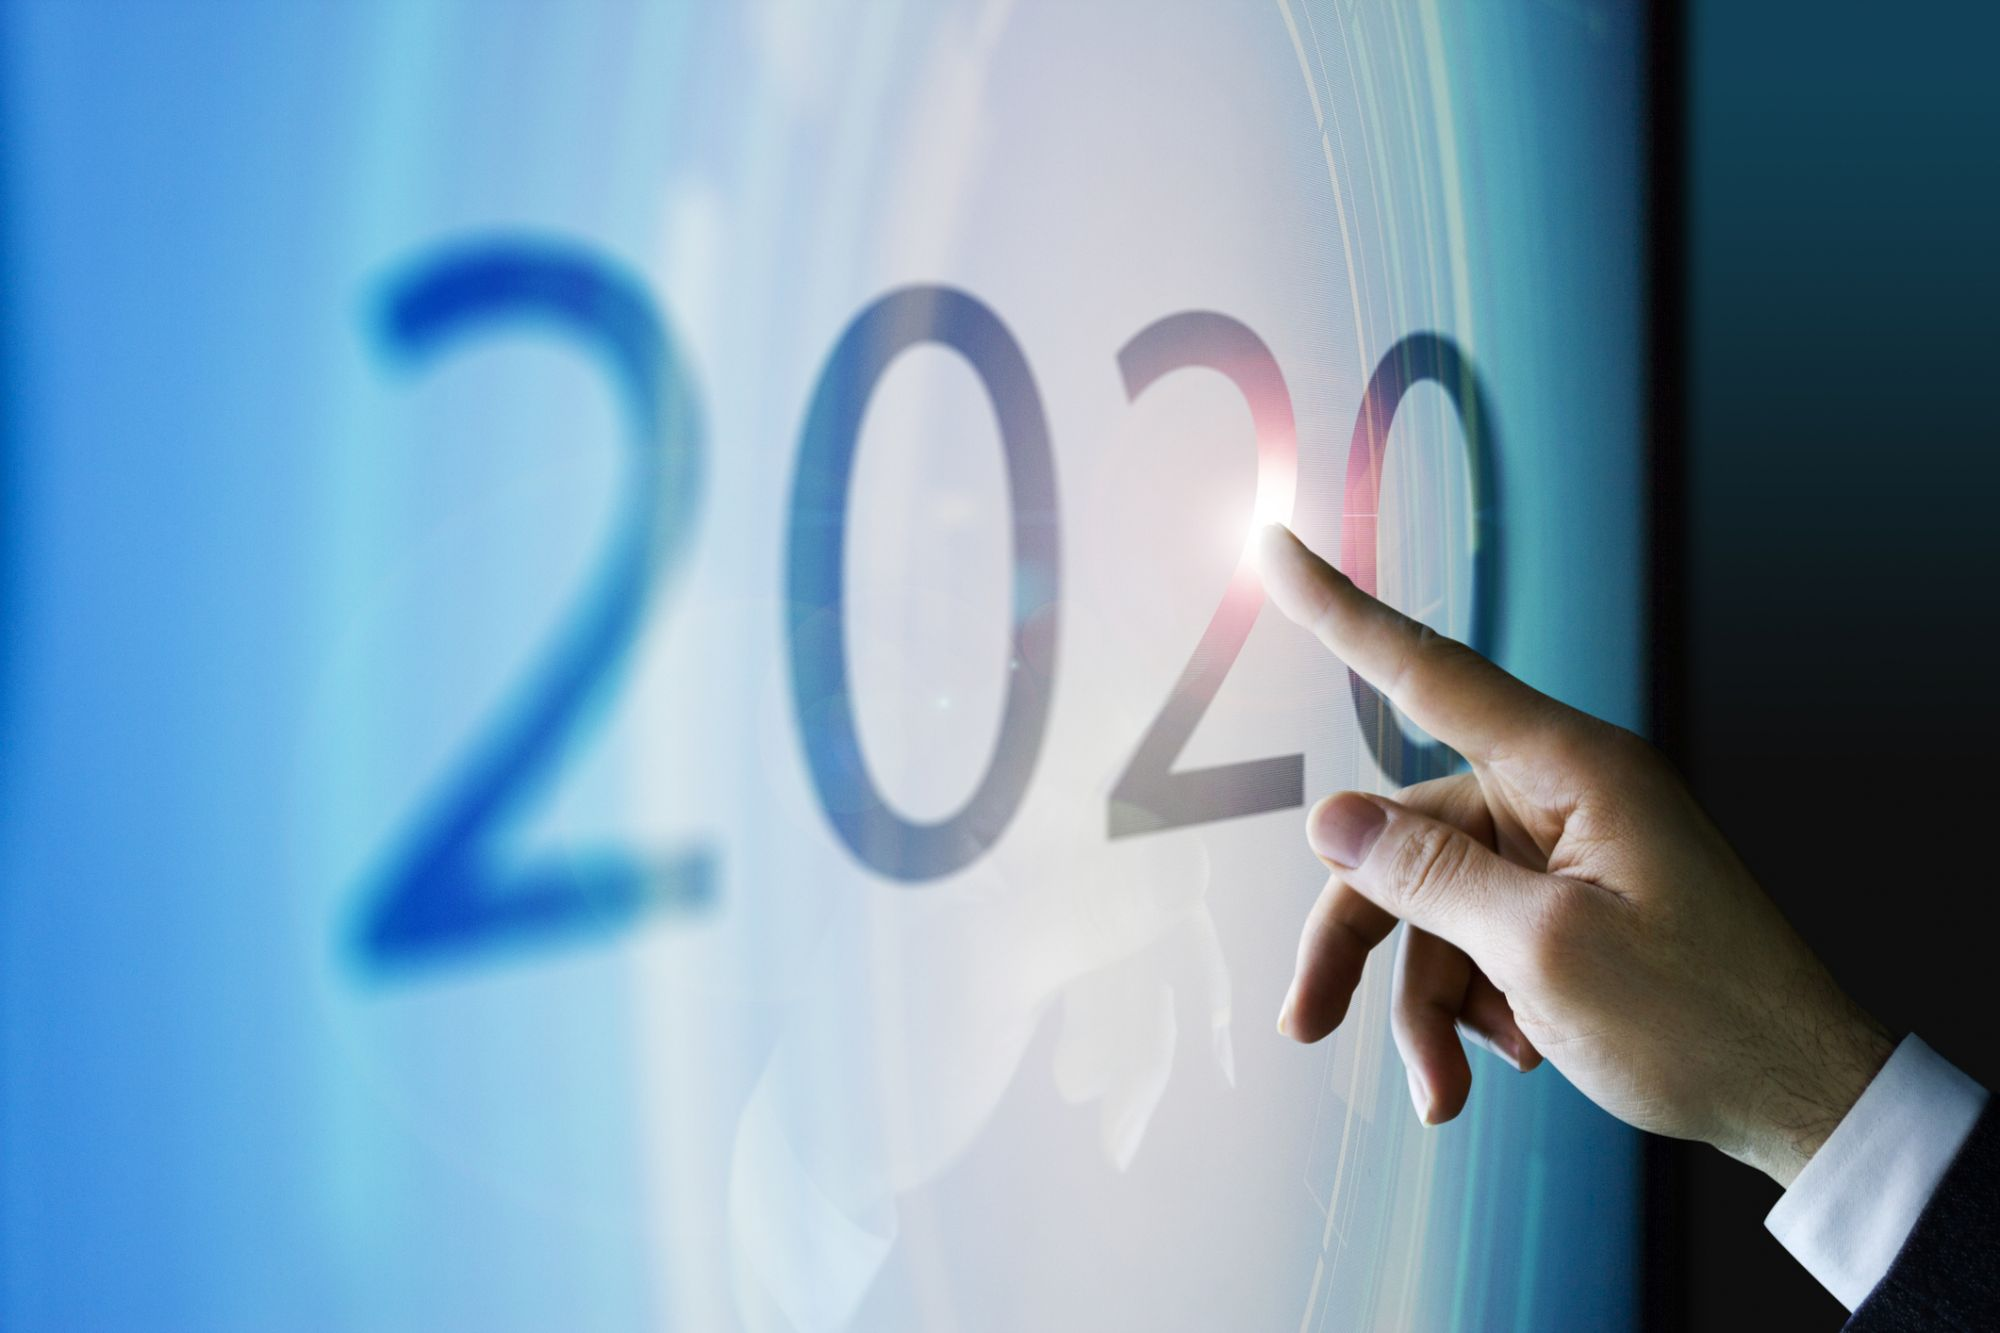 tchnology-in-2020